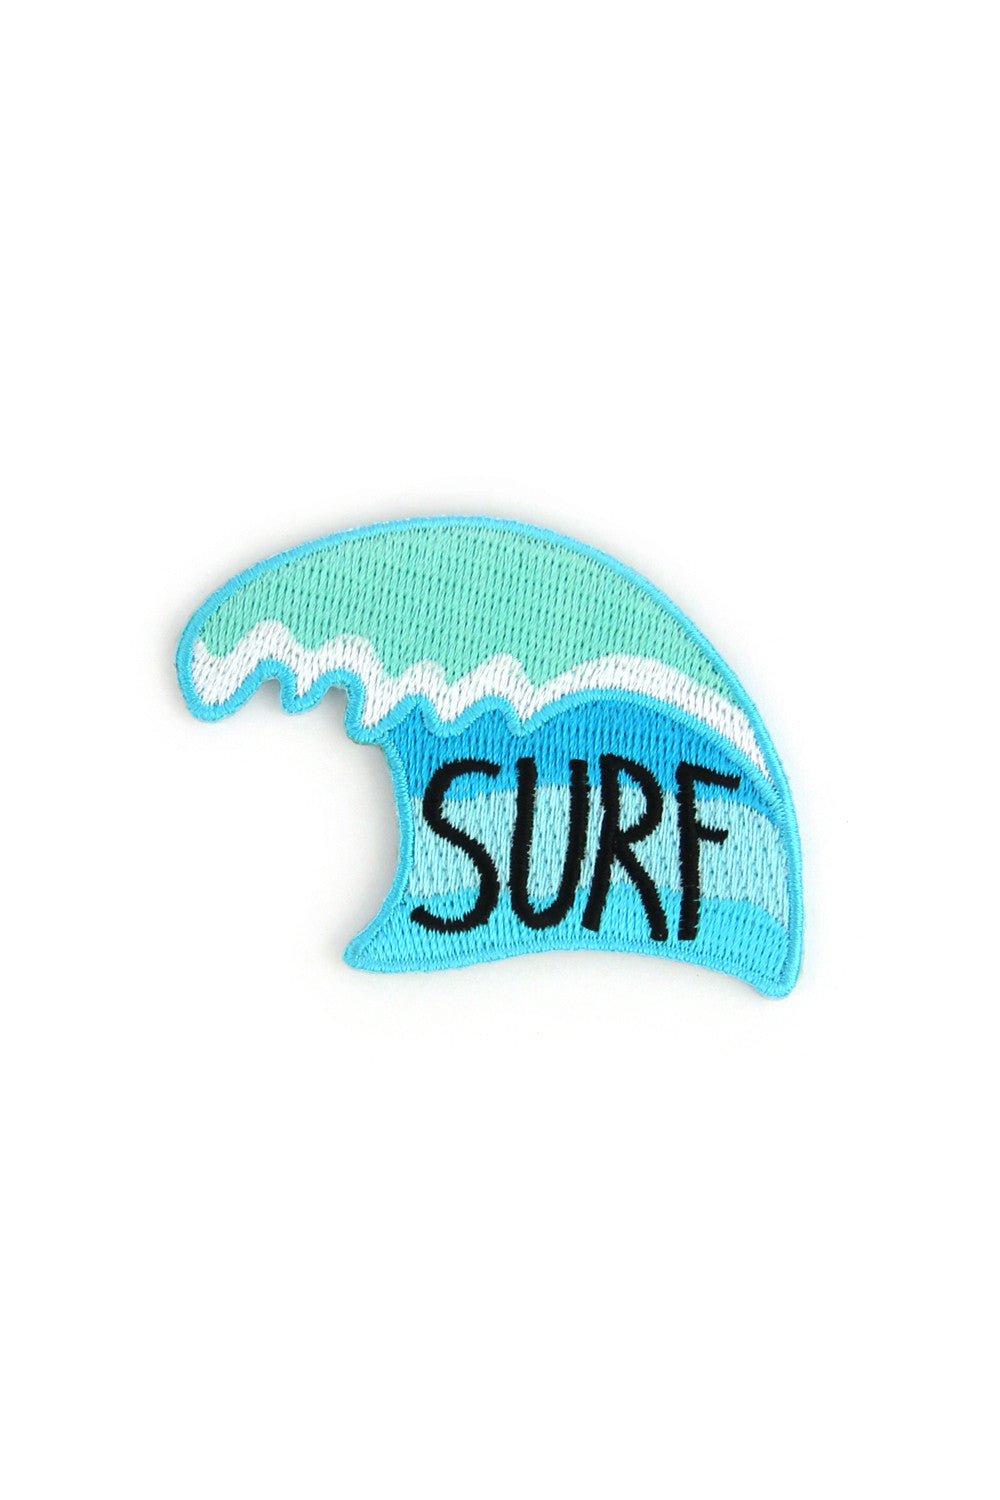 Perfect Wave- Mokuyobi x Mowgli Iron On Patch